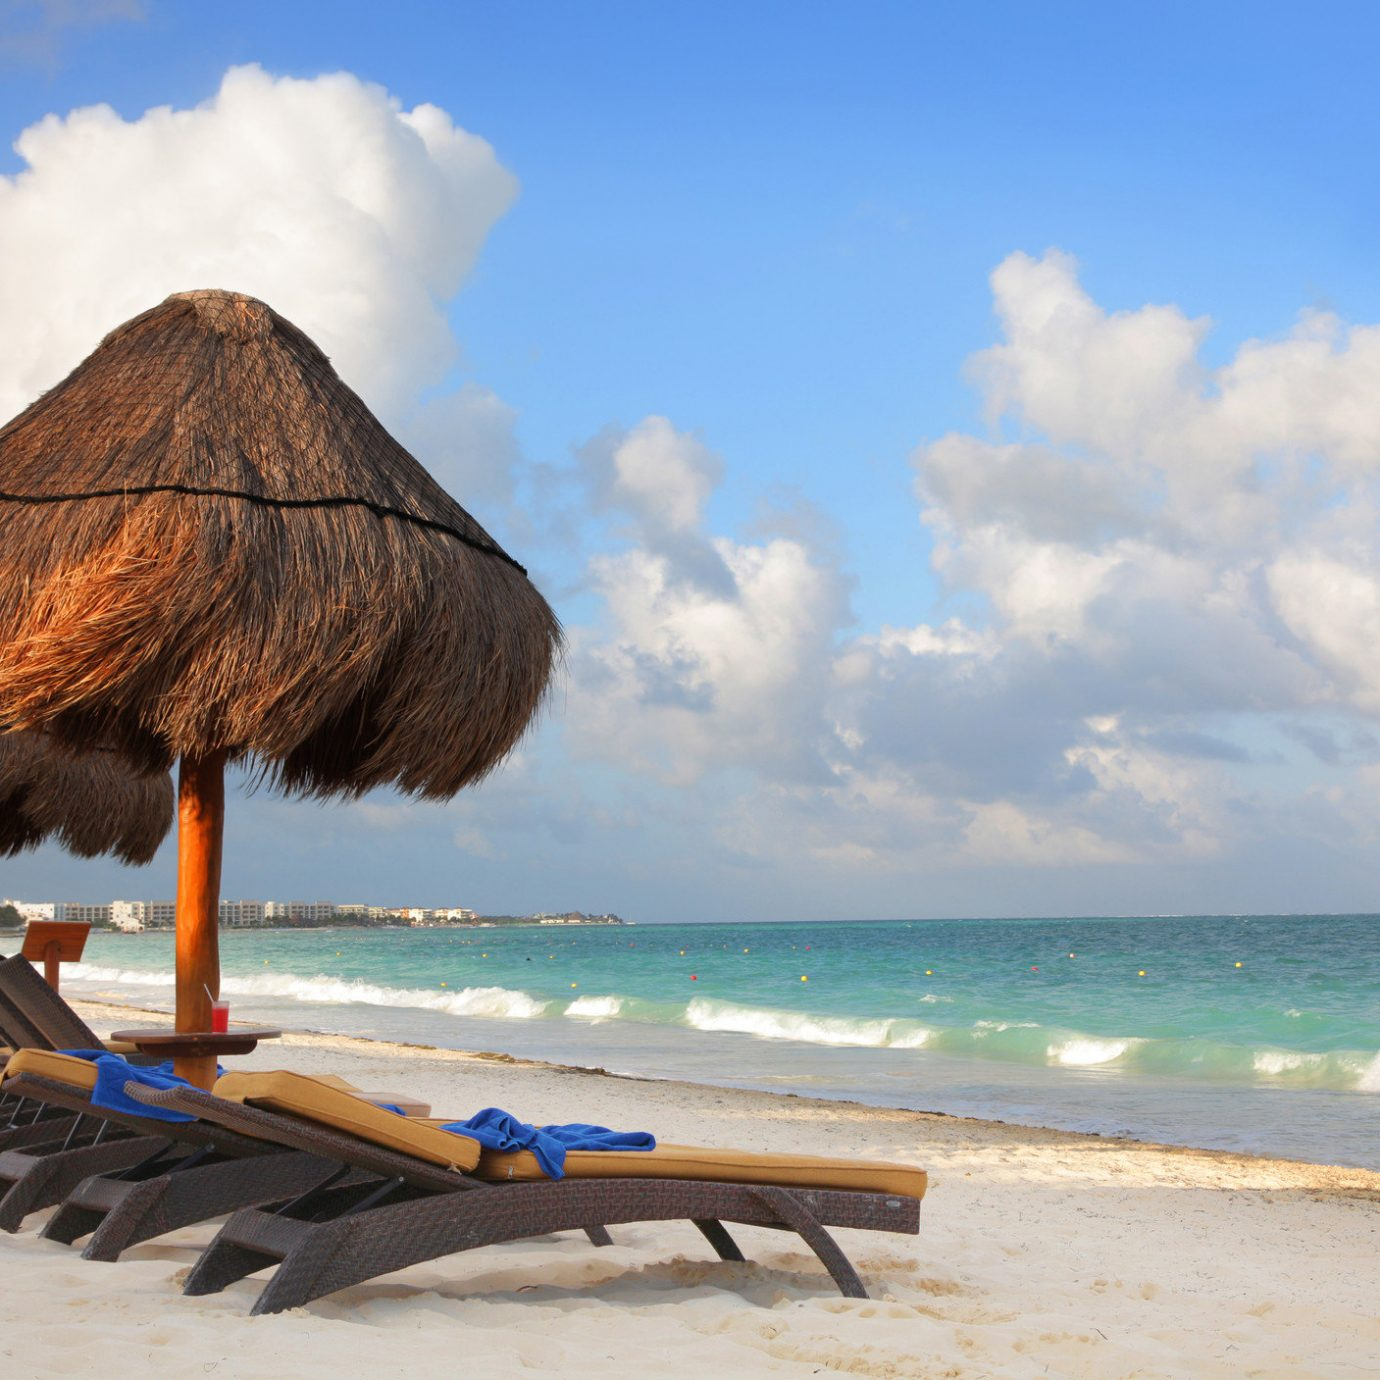 All-Inclusive Resorts Hotels sky outdoor water Beach ground umbrella Nature body of water Sea chair vacation caribbean cloud tropics shore coastal and oceanic landforms Ocean tourism Coast leisure sand sandy day distance